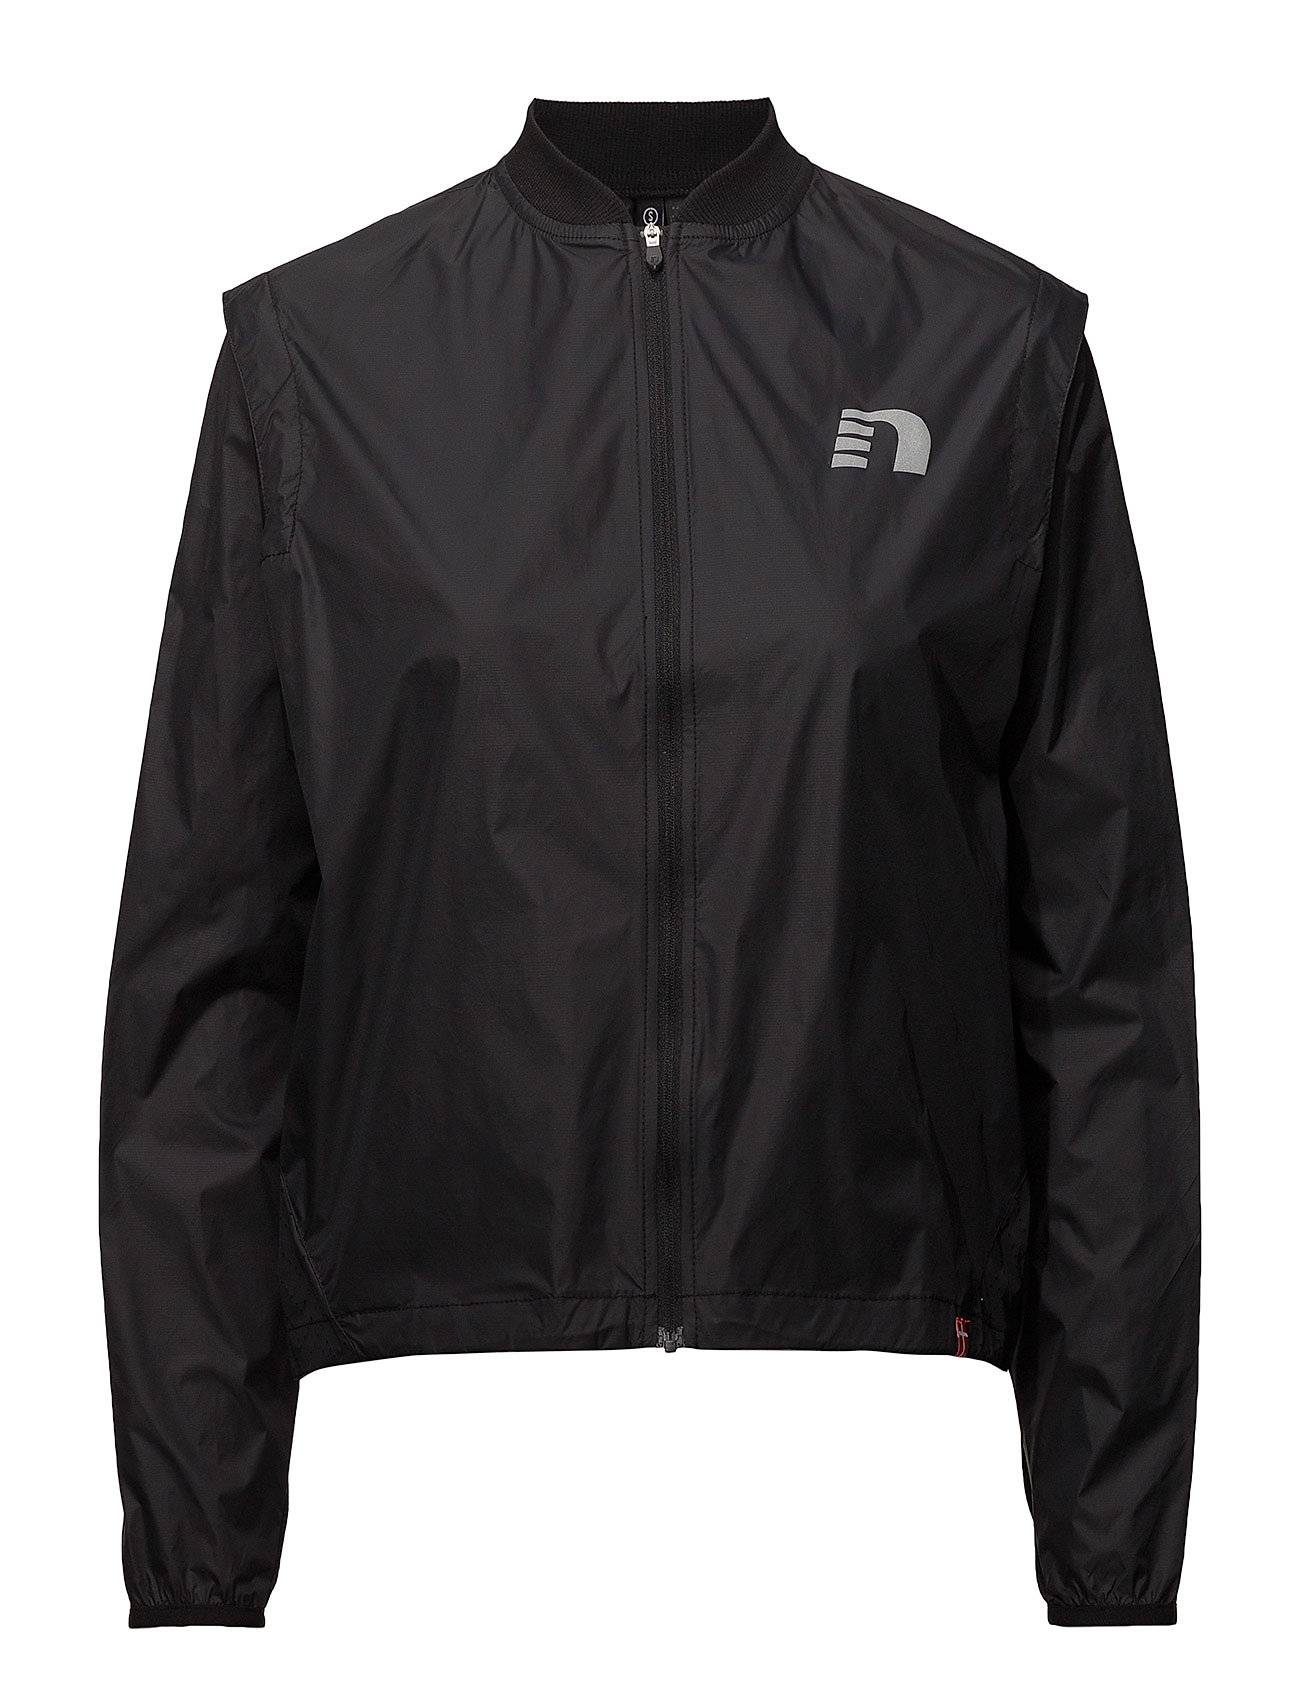 Newline Imotion Windbreaker Removable Sleeves